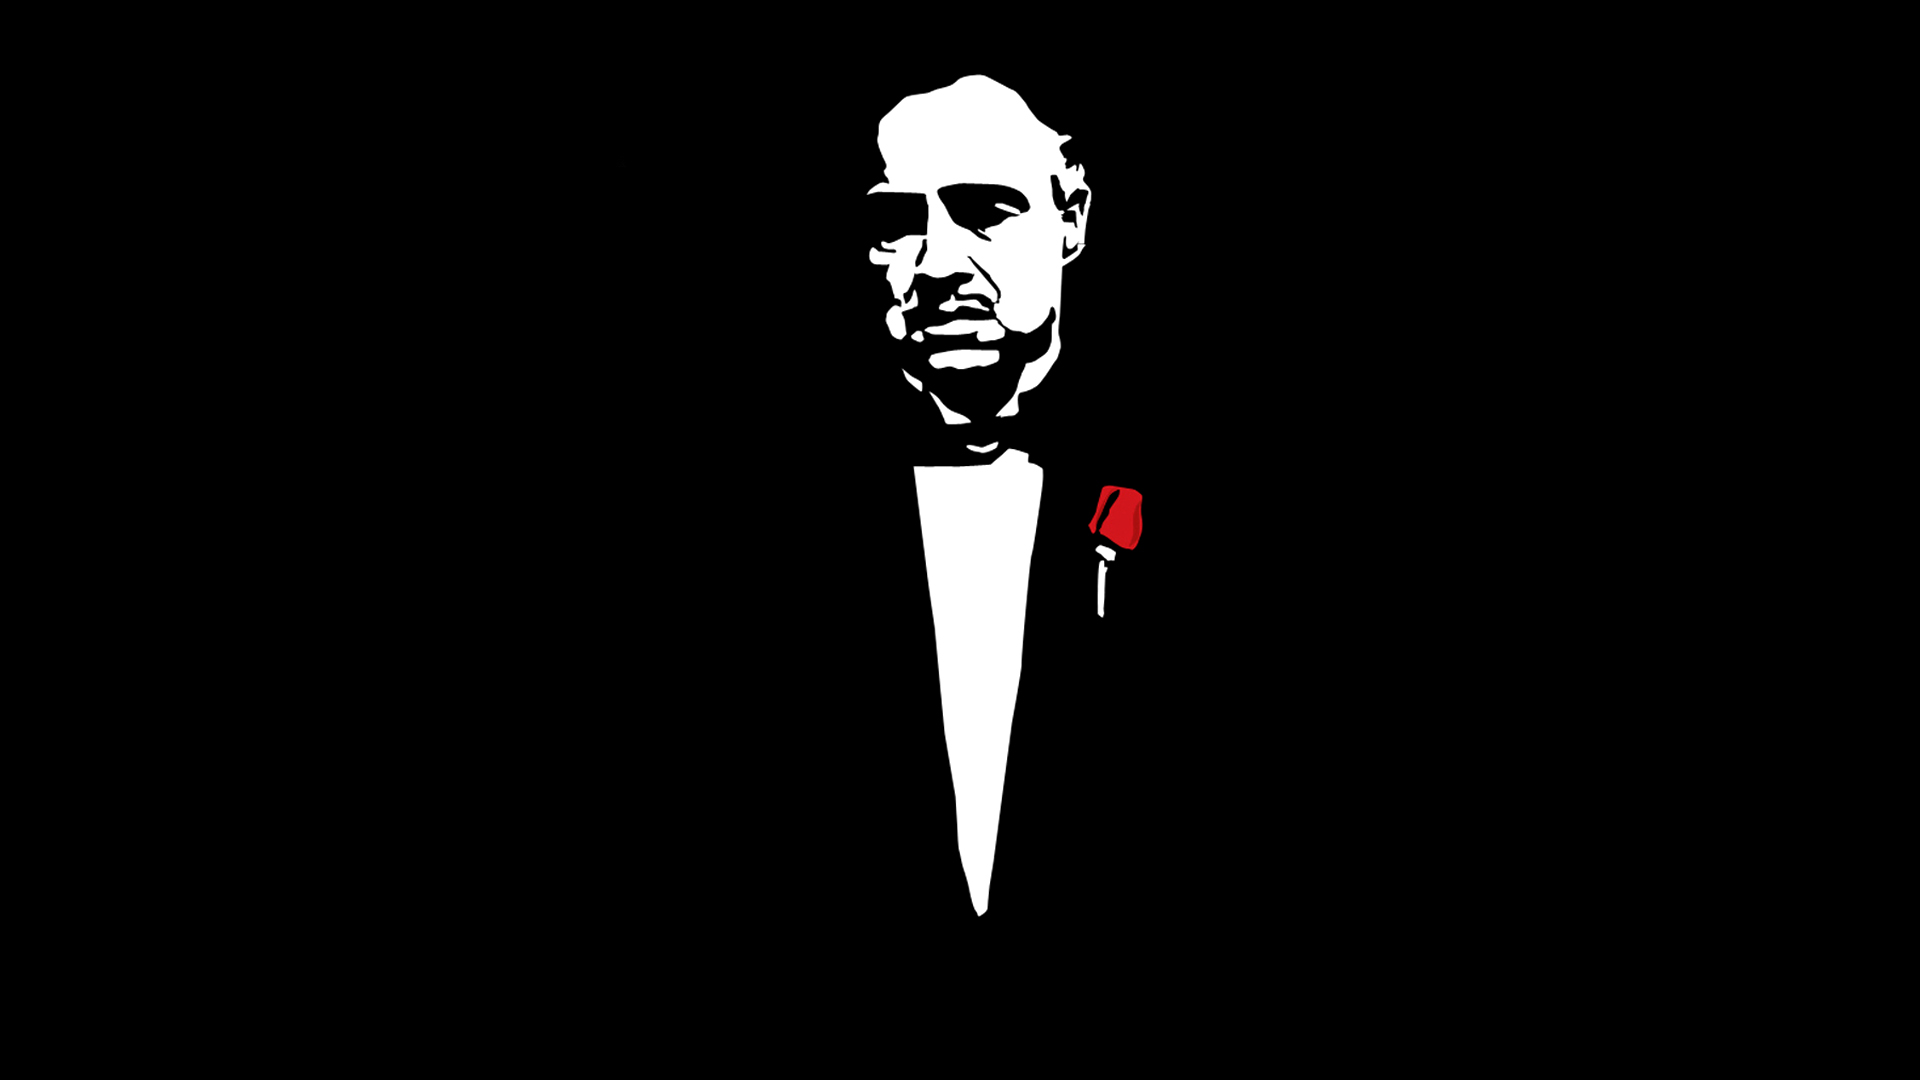 the godfather poster in bw with red rose